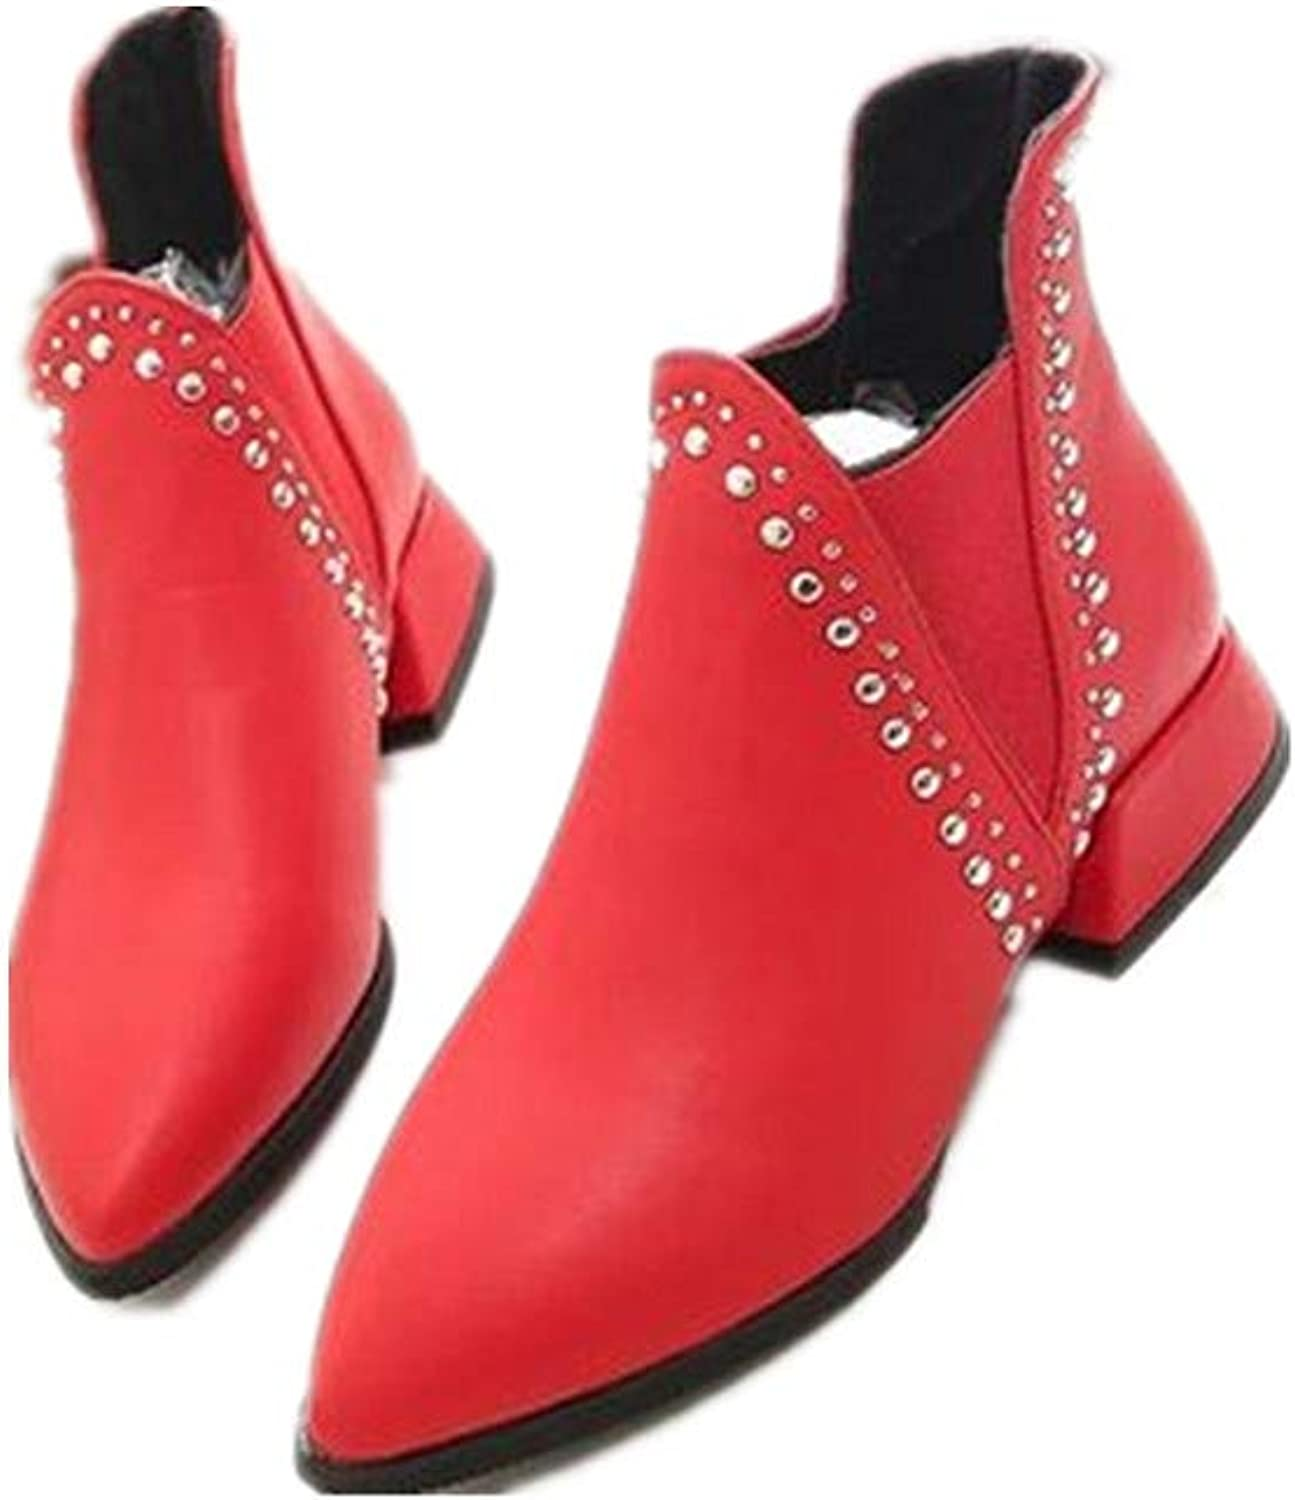 Edv0d2v266 Casual Western Ankle Bootie Comfortable Closed Toe shoes Low Heel Slip on Boot